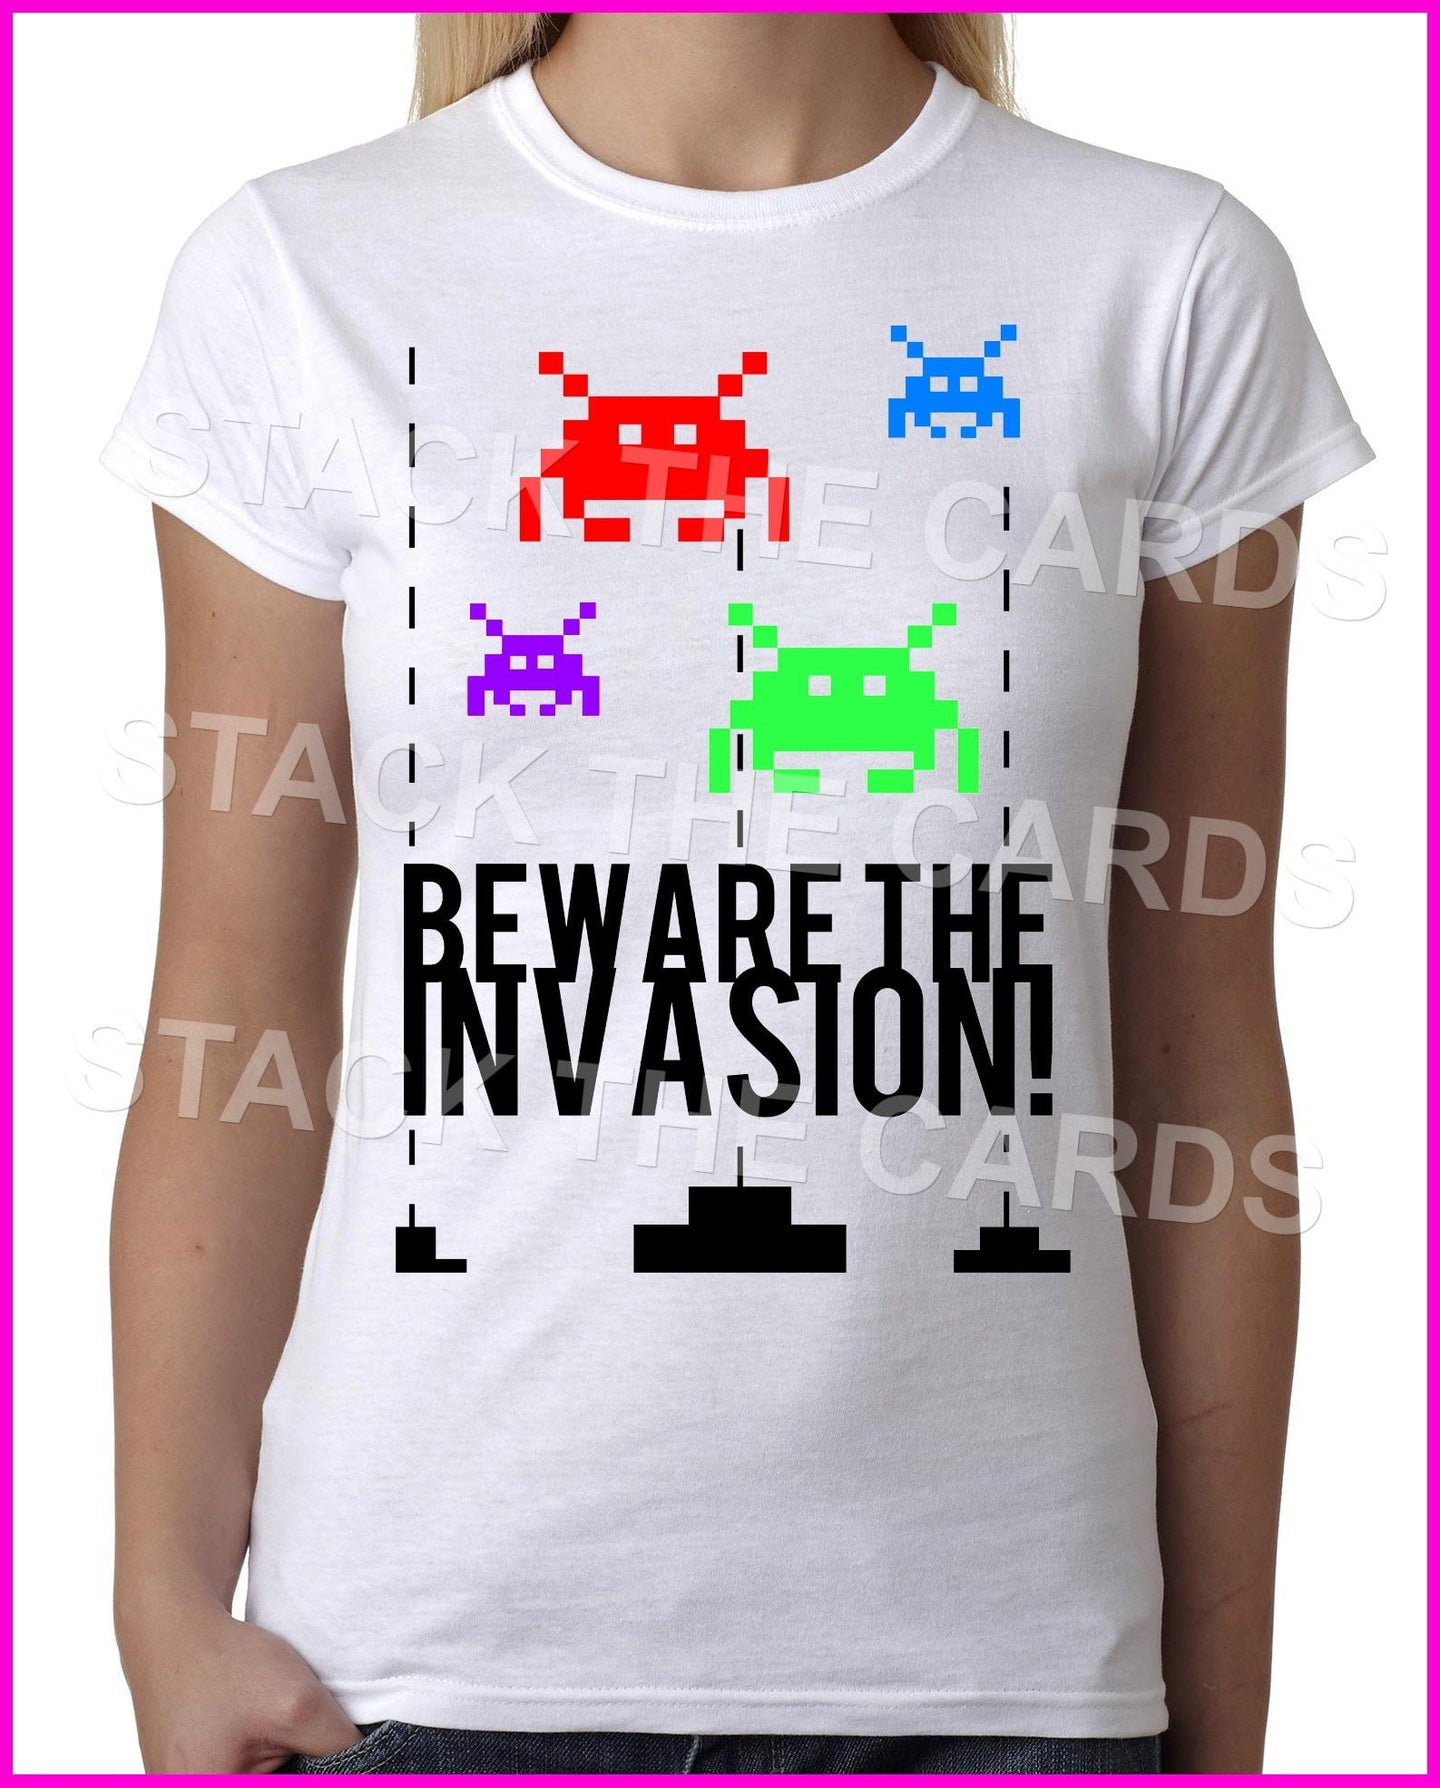 Beware The Space Invasion Invaders - Womens White T-Shirt - Geek Retro Fun Kitsch Cute - Stack The Cards - [variant_title]